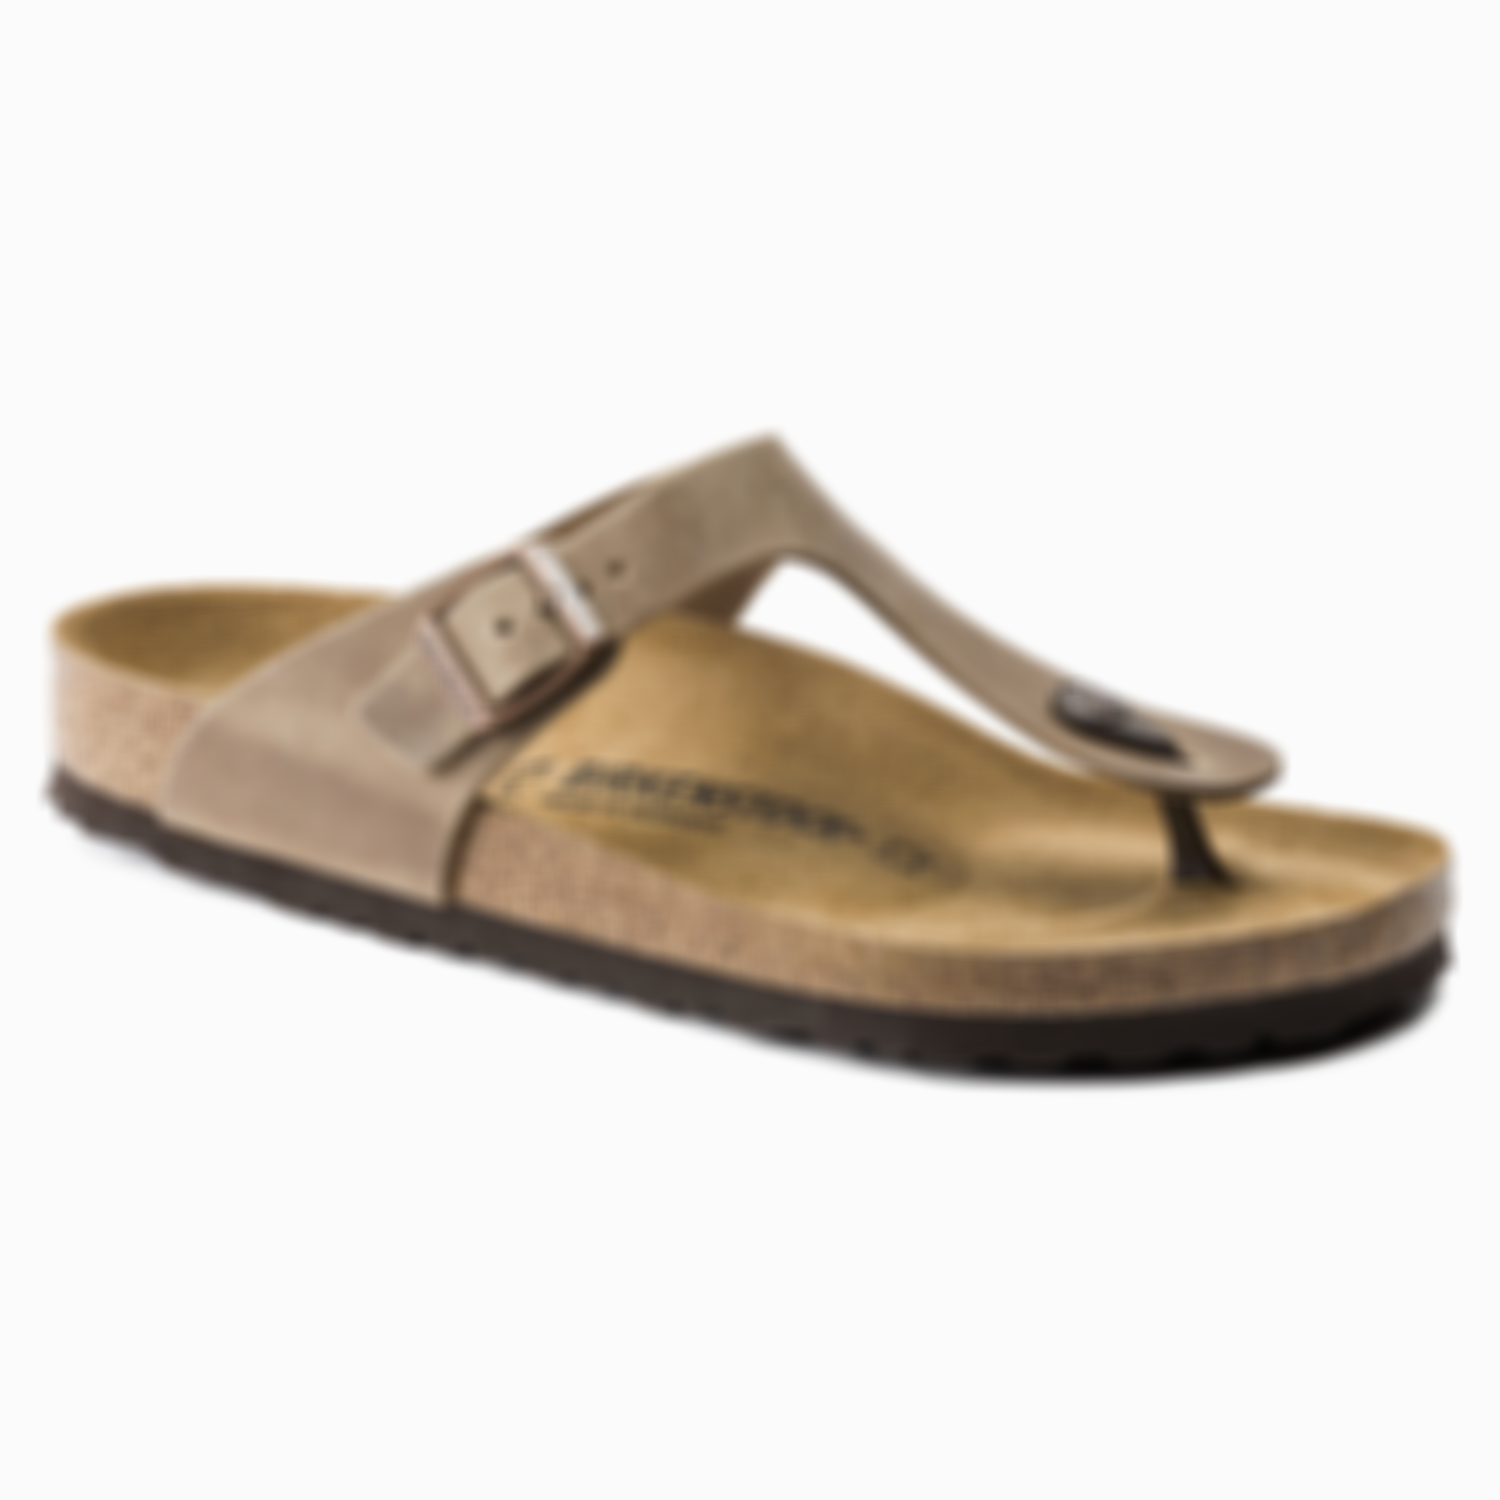 Gizeh Thong  Comfort Sandal(Buy 2 Get 10% OFF & Free Shipping)!